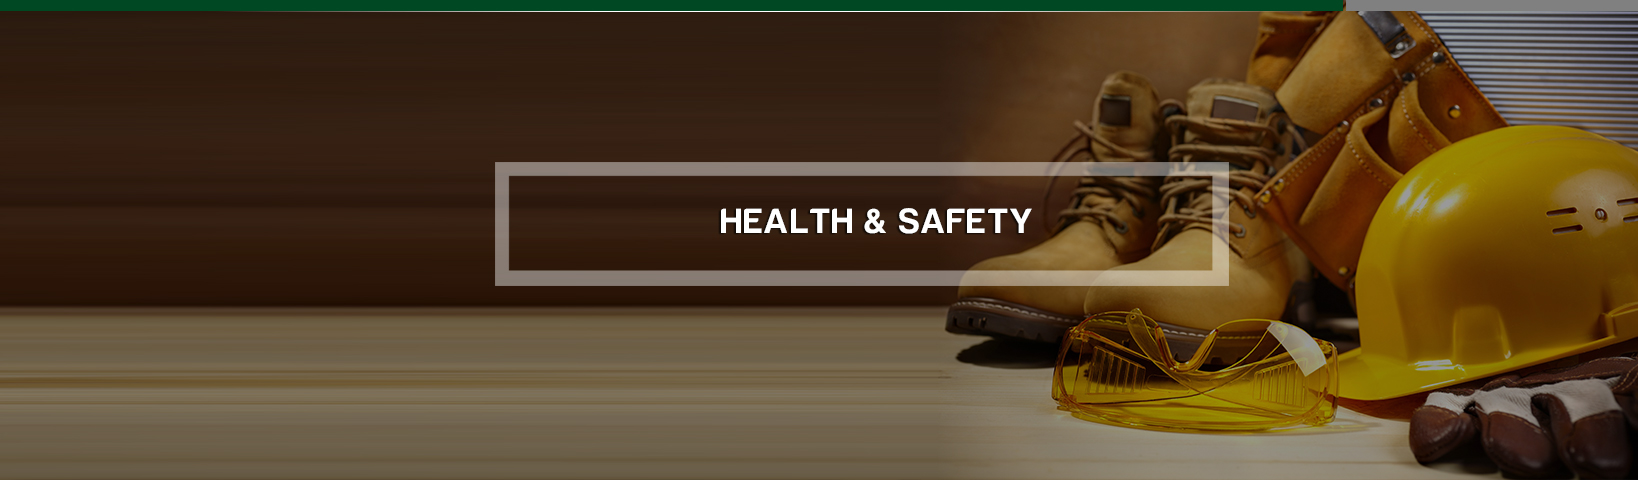 allview-designs-HEALTH-&-SAFETY